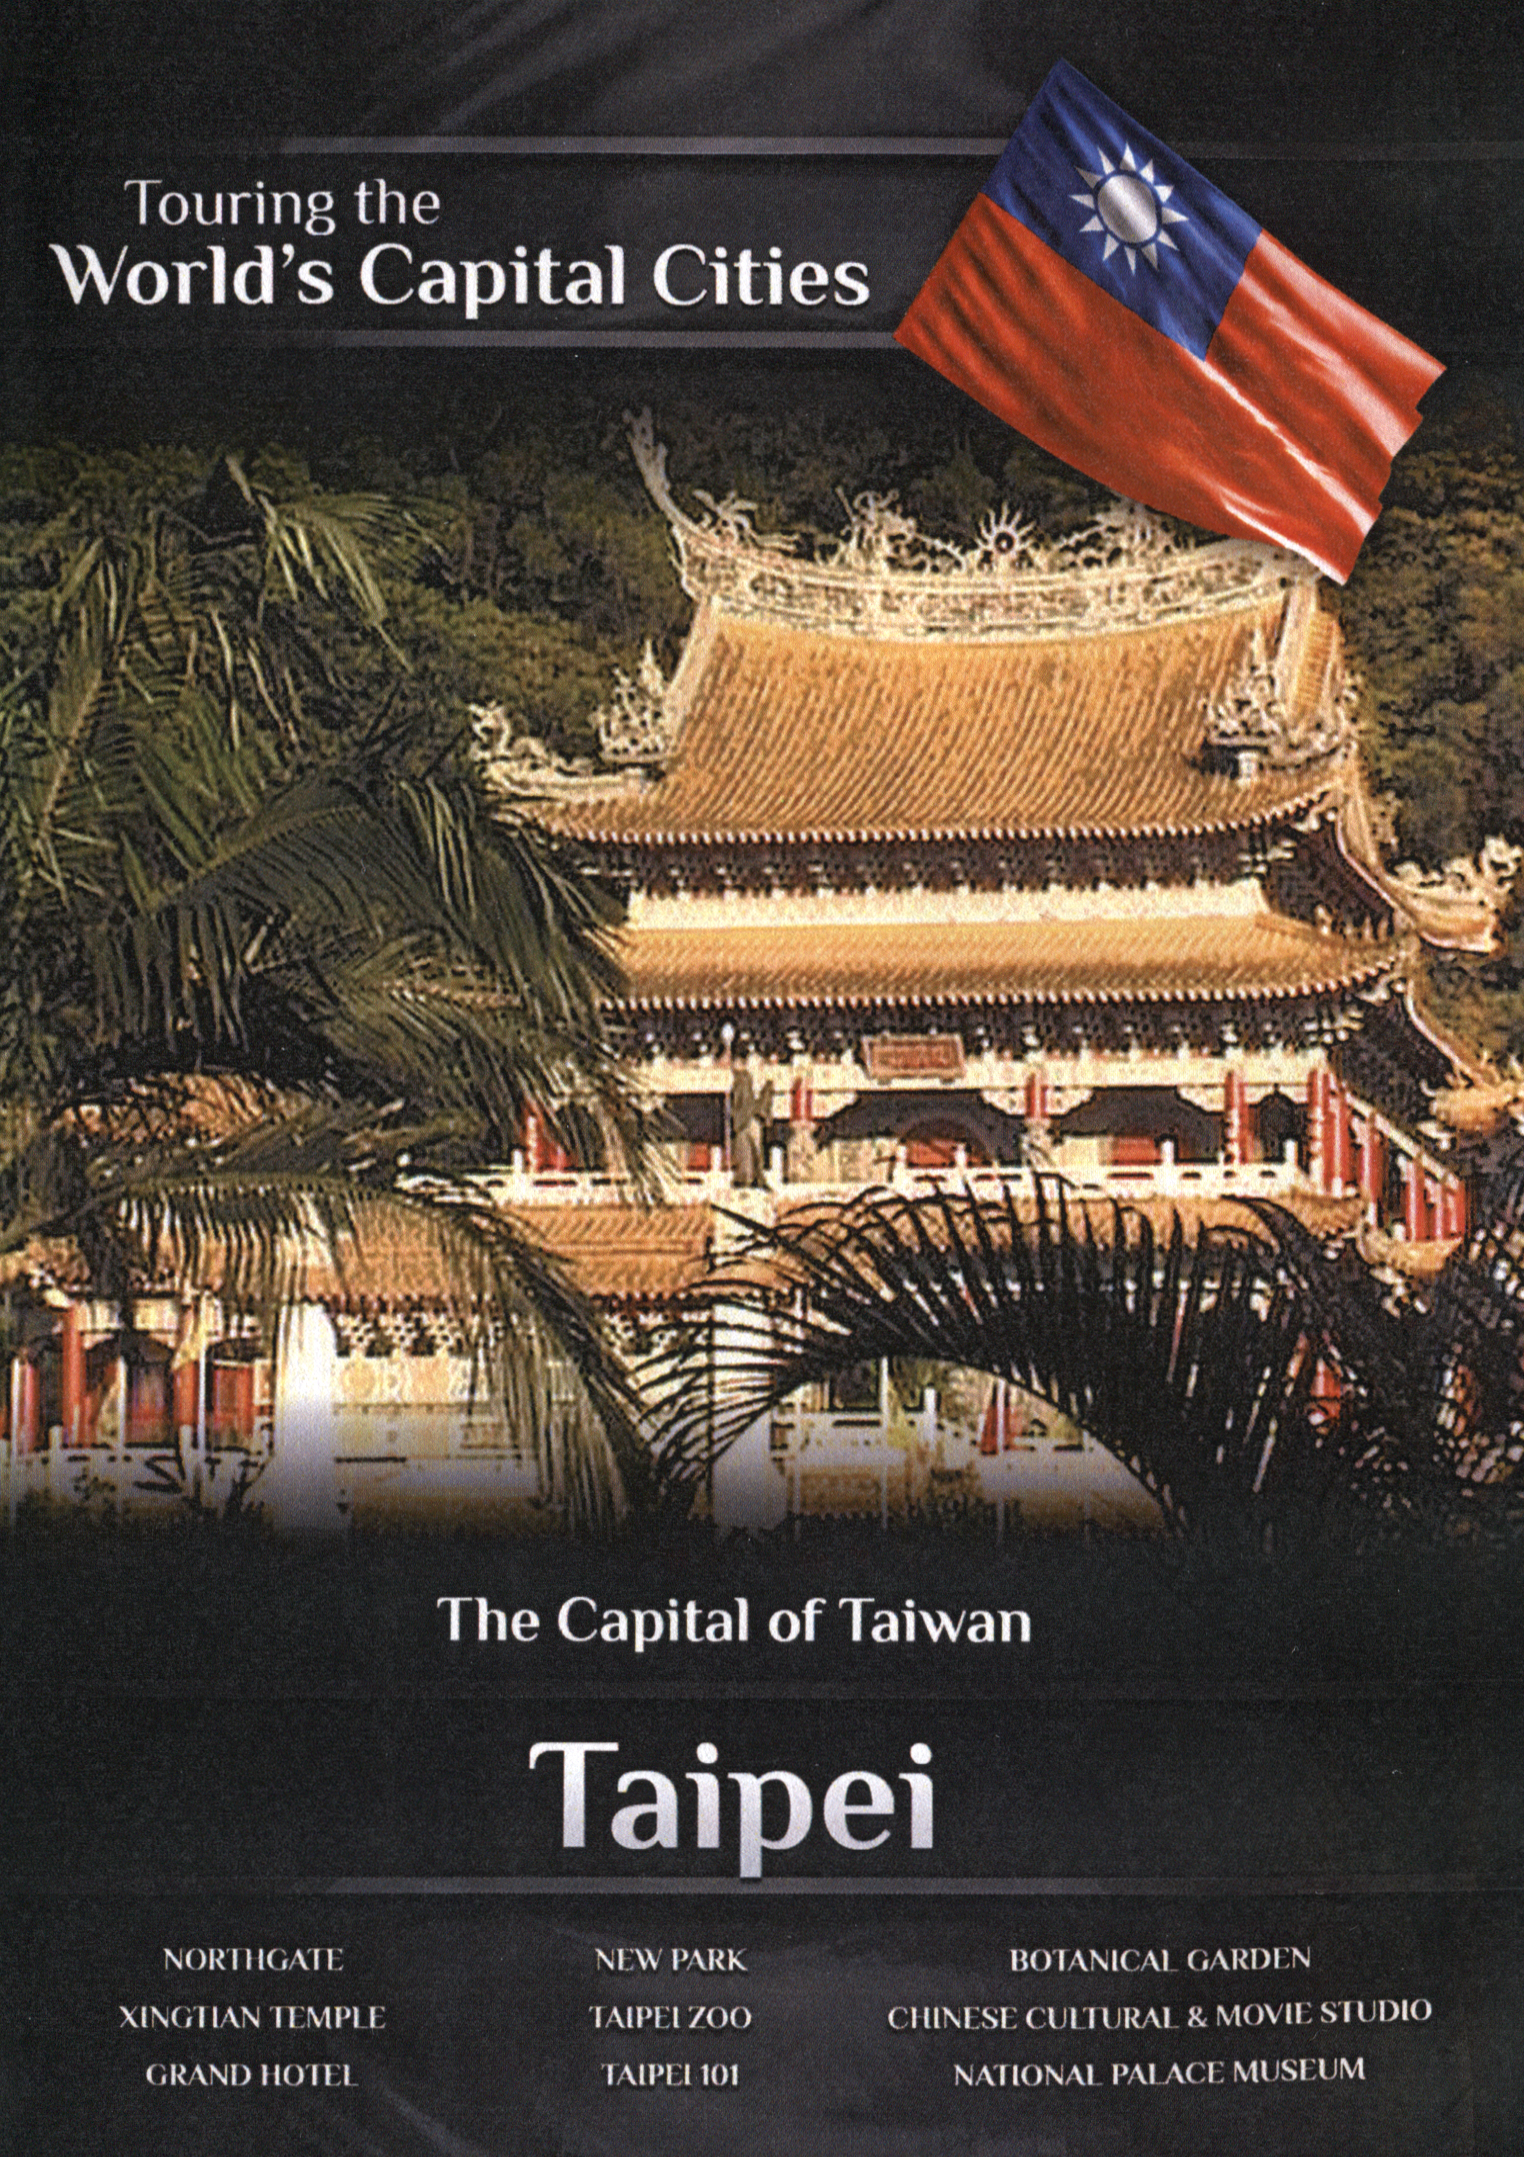 Touring the World's Capital Cities: The Capital of Taiwan - Taipei